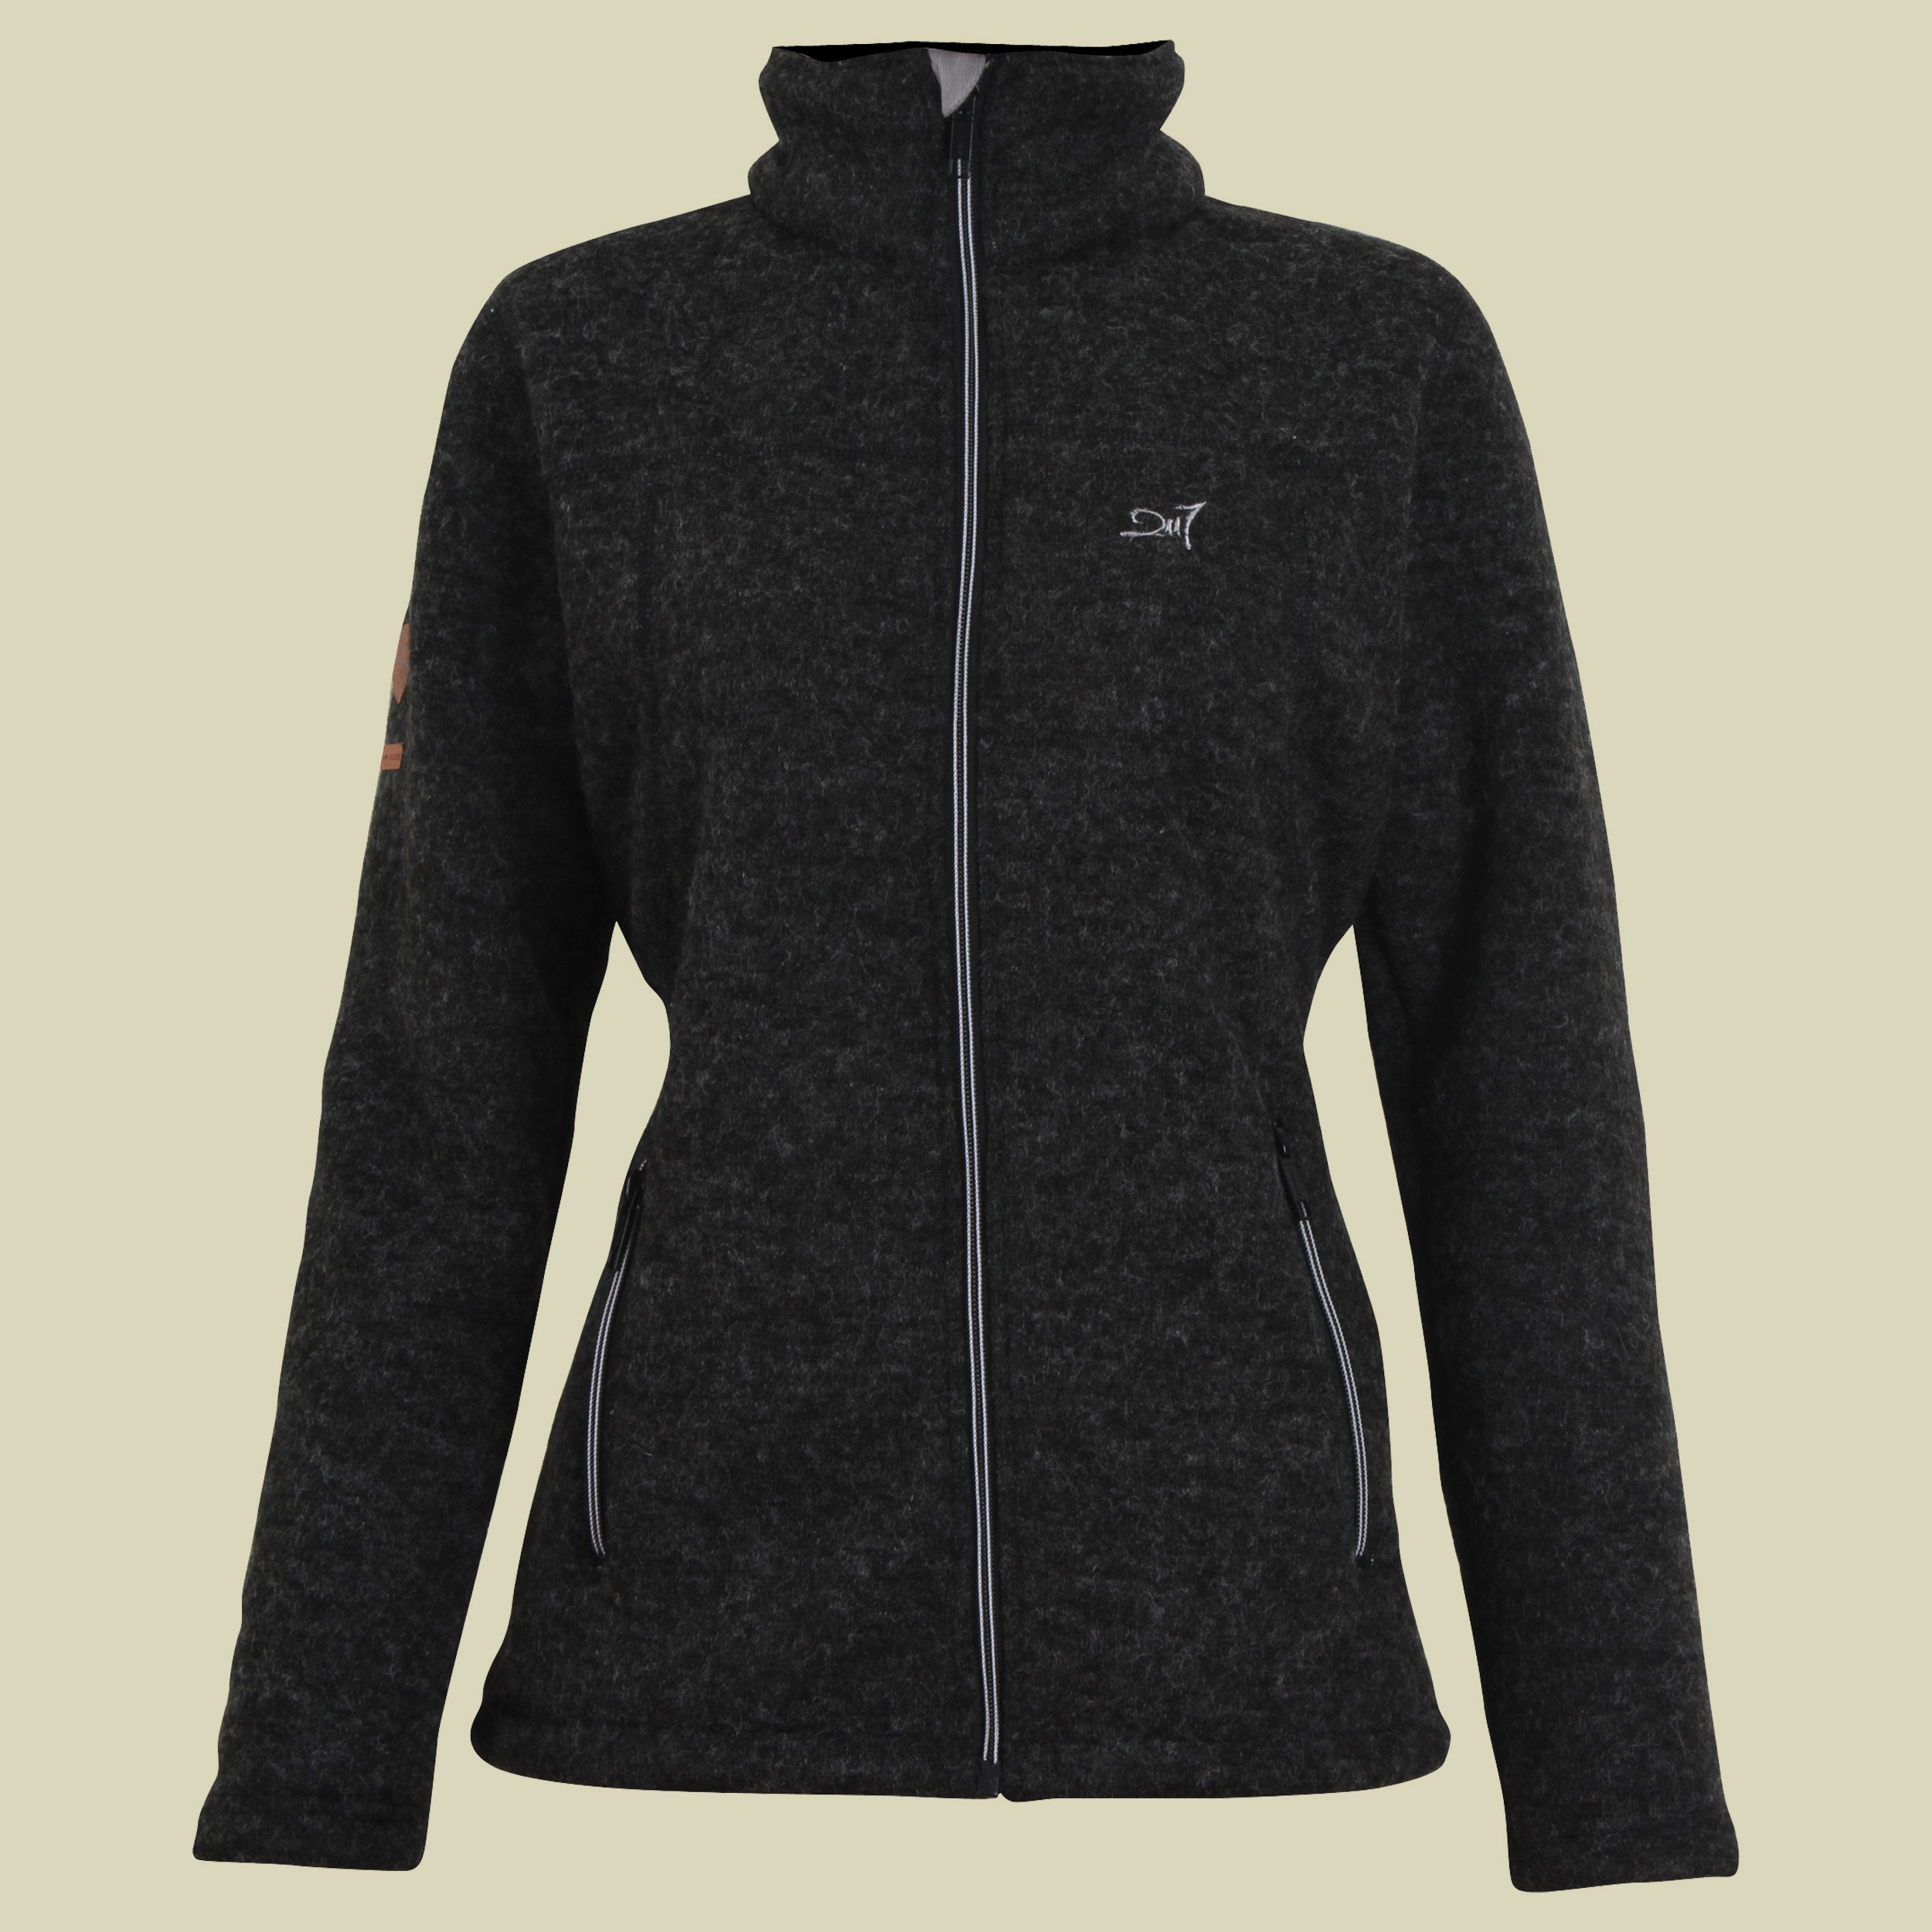 Julita Wollfleece Street Jacket Women